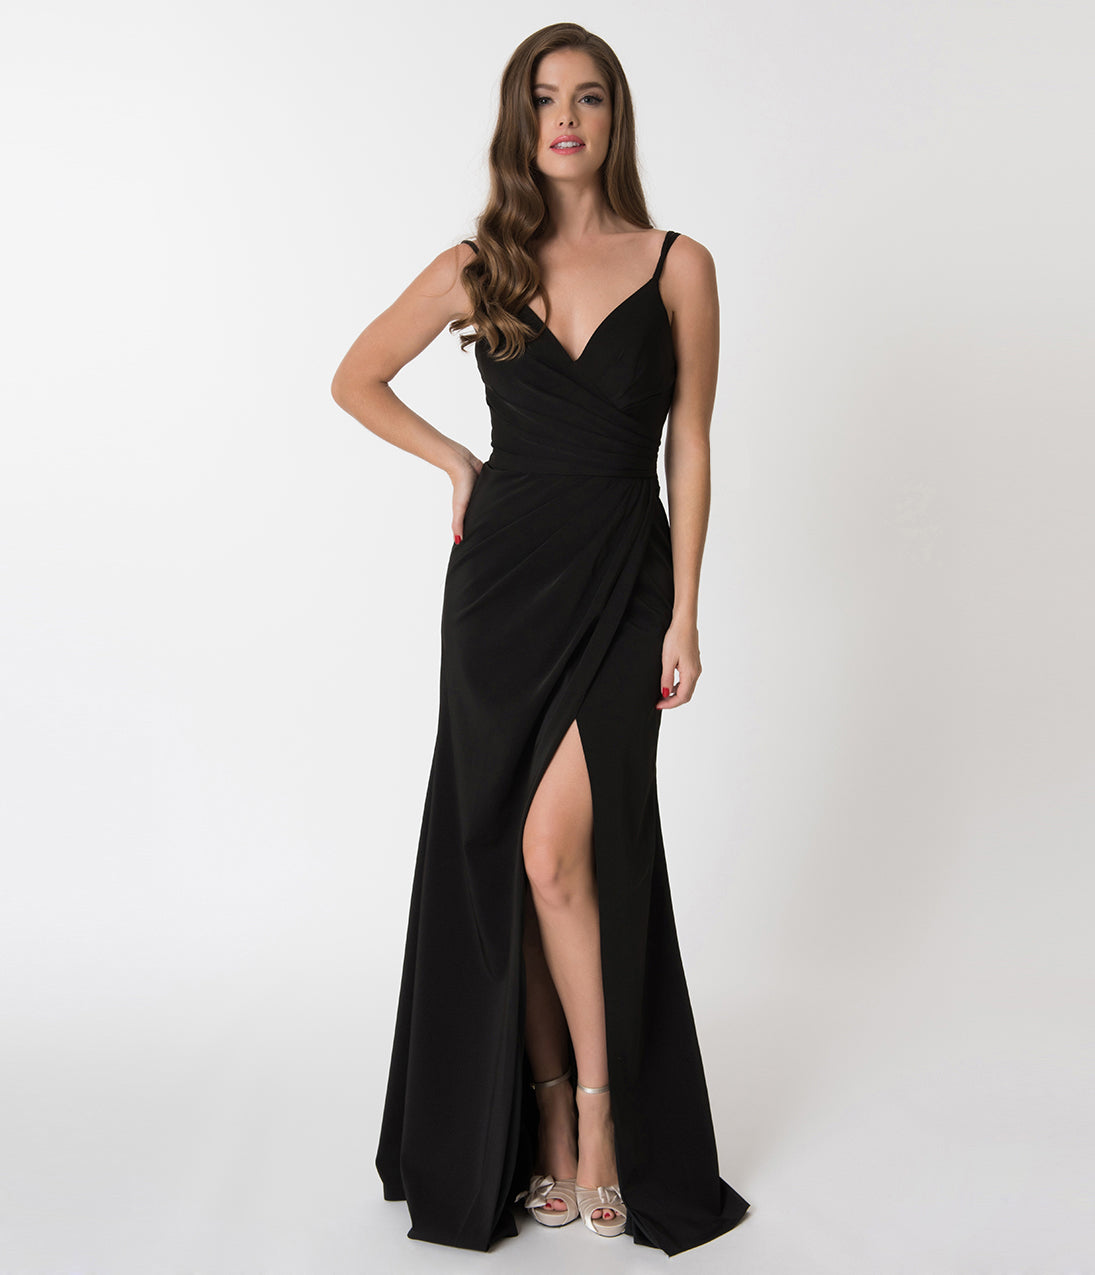 1950s Prom Dresses & Party Dresses Black Sexy Pleated Long Dress $118.00 AT vintagedancer.com